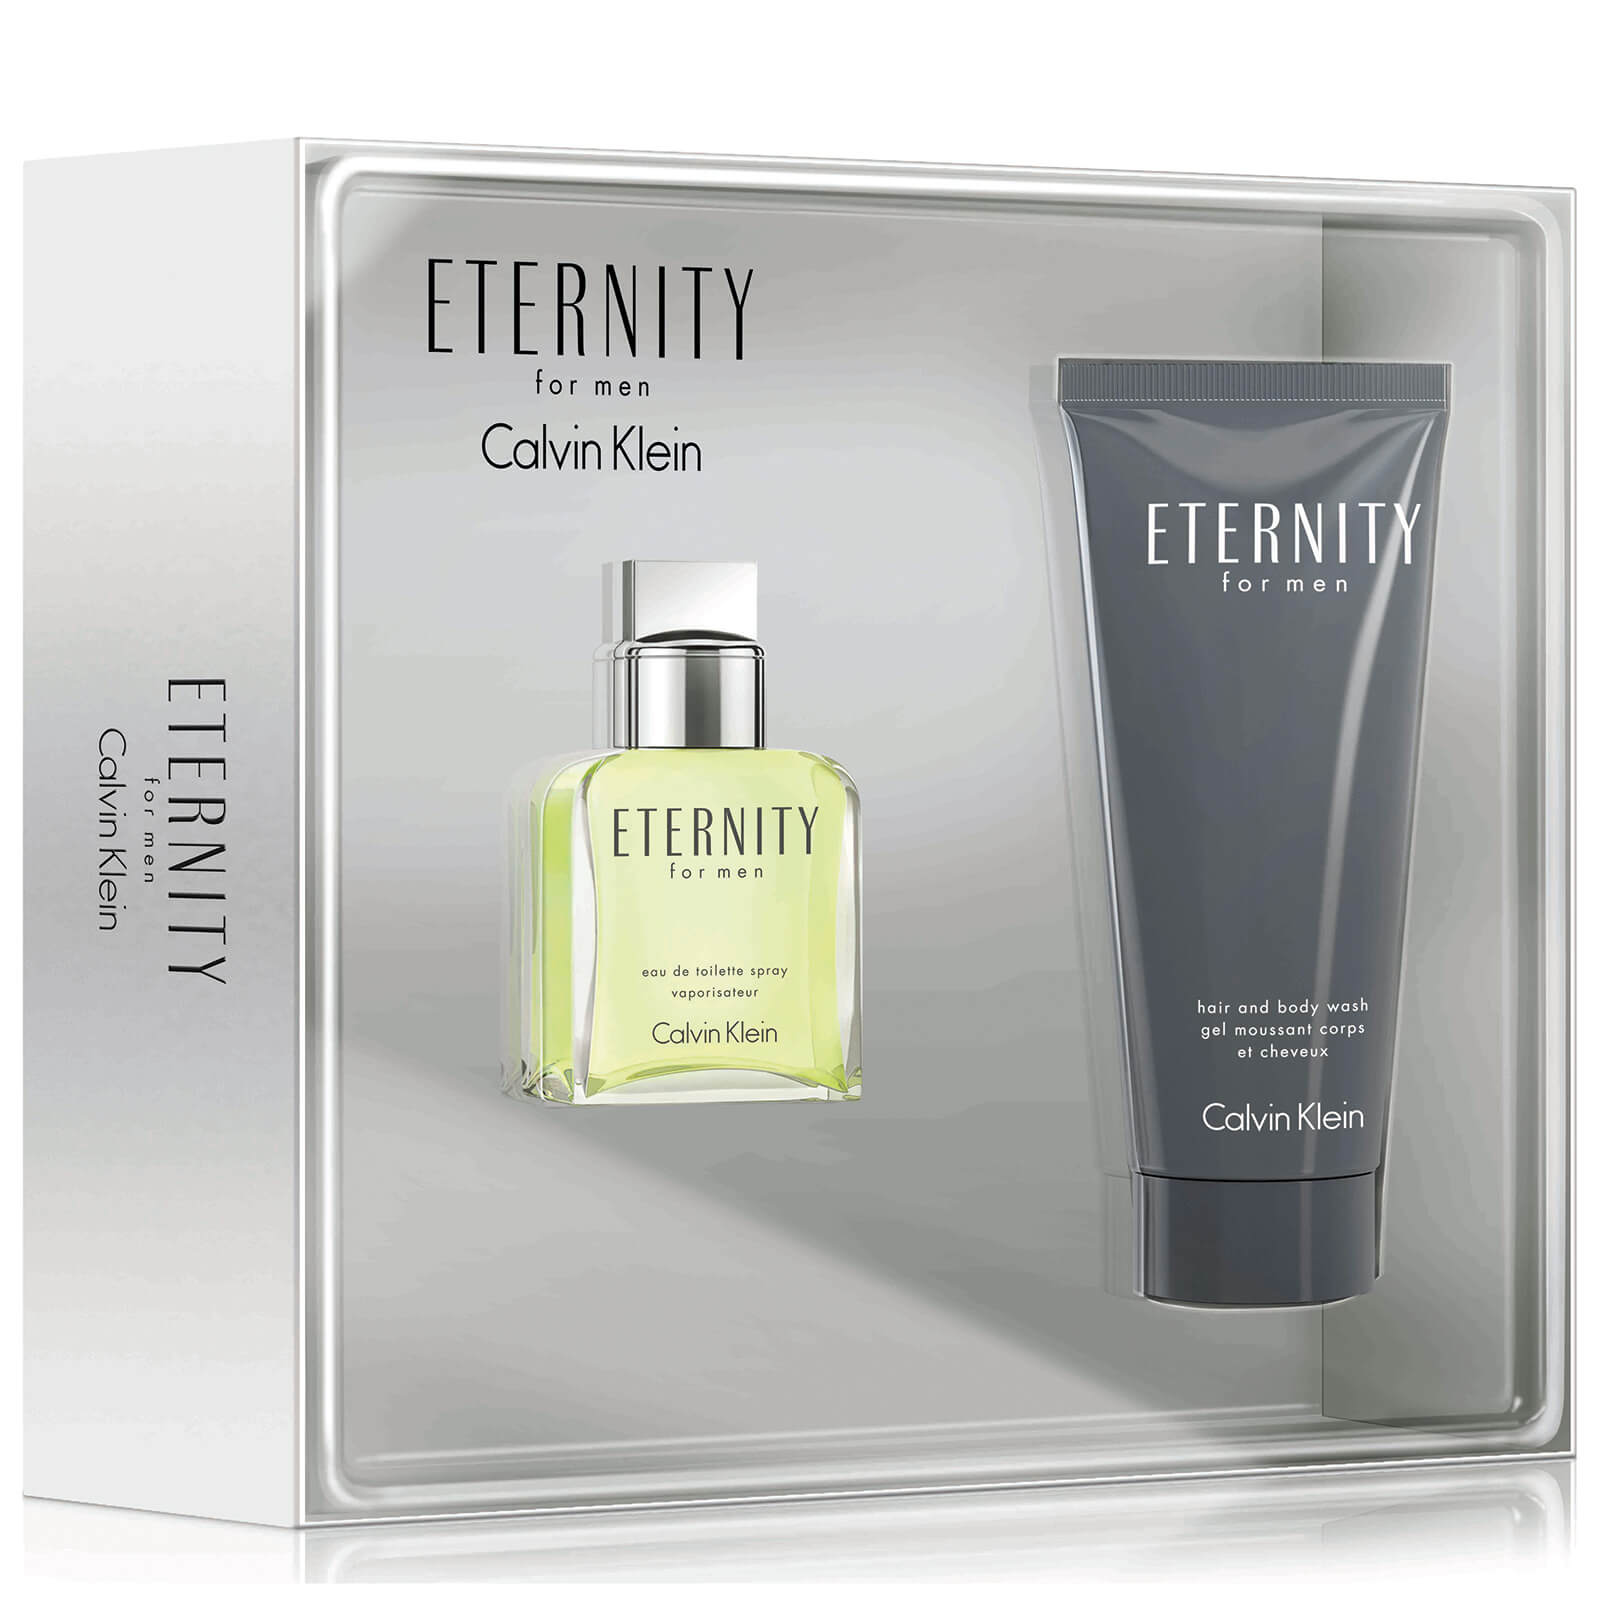 Calvin Klein Eternity For Men Eau De Toilette 30ml Coffret Free Man Description Kleins